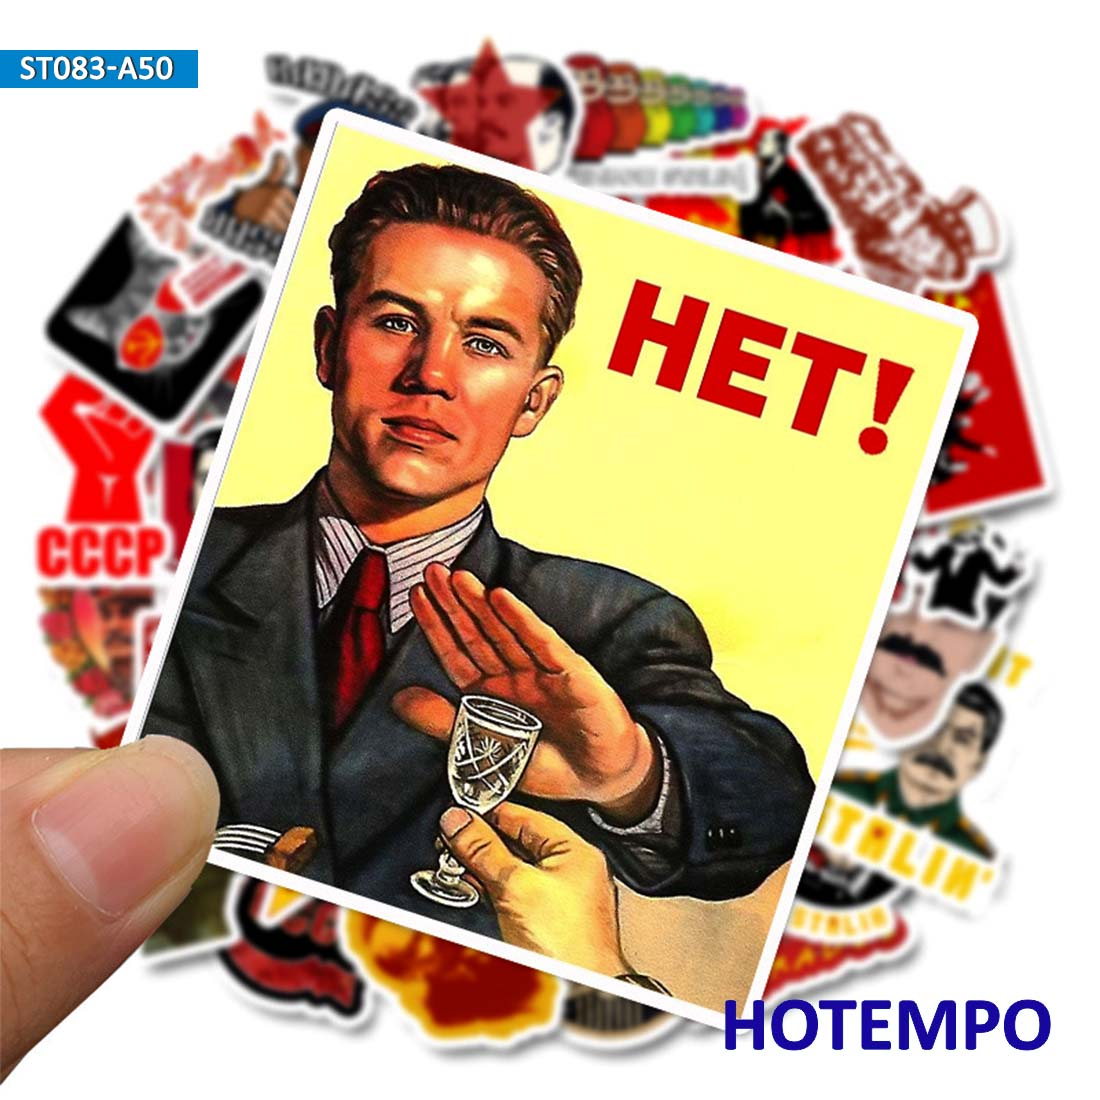 50pcs Stalin USSR CCCP Stickers For Mobile Phone Laptop Luggage Guitar Case Skateboard Snowboard Fixed Gear Bike  Decal Stickers